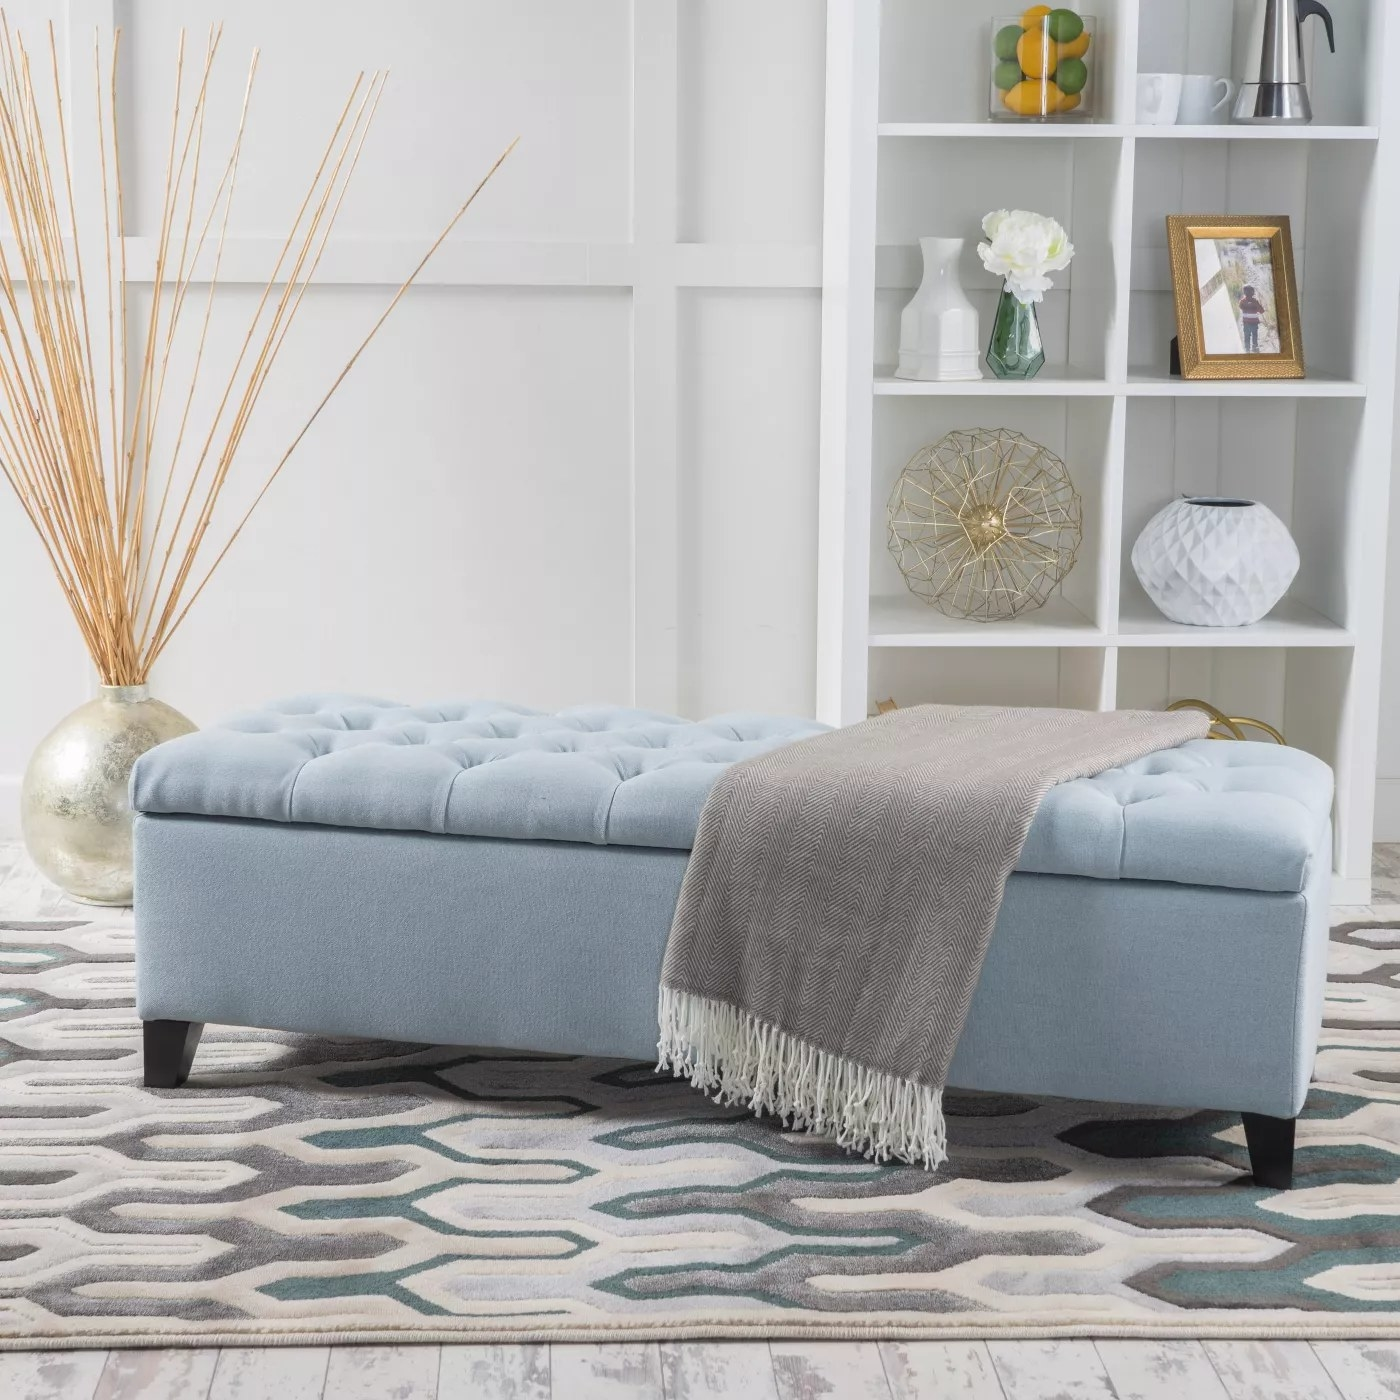 The ottoman in blue